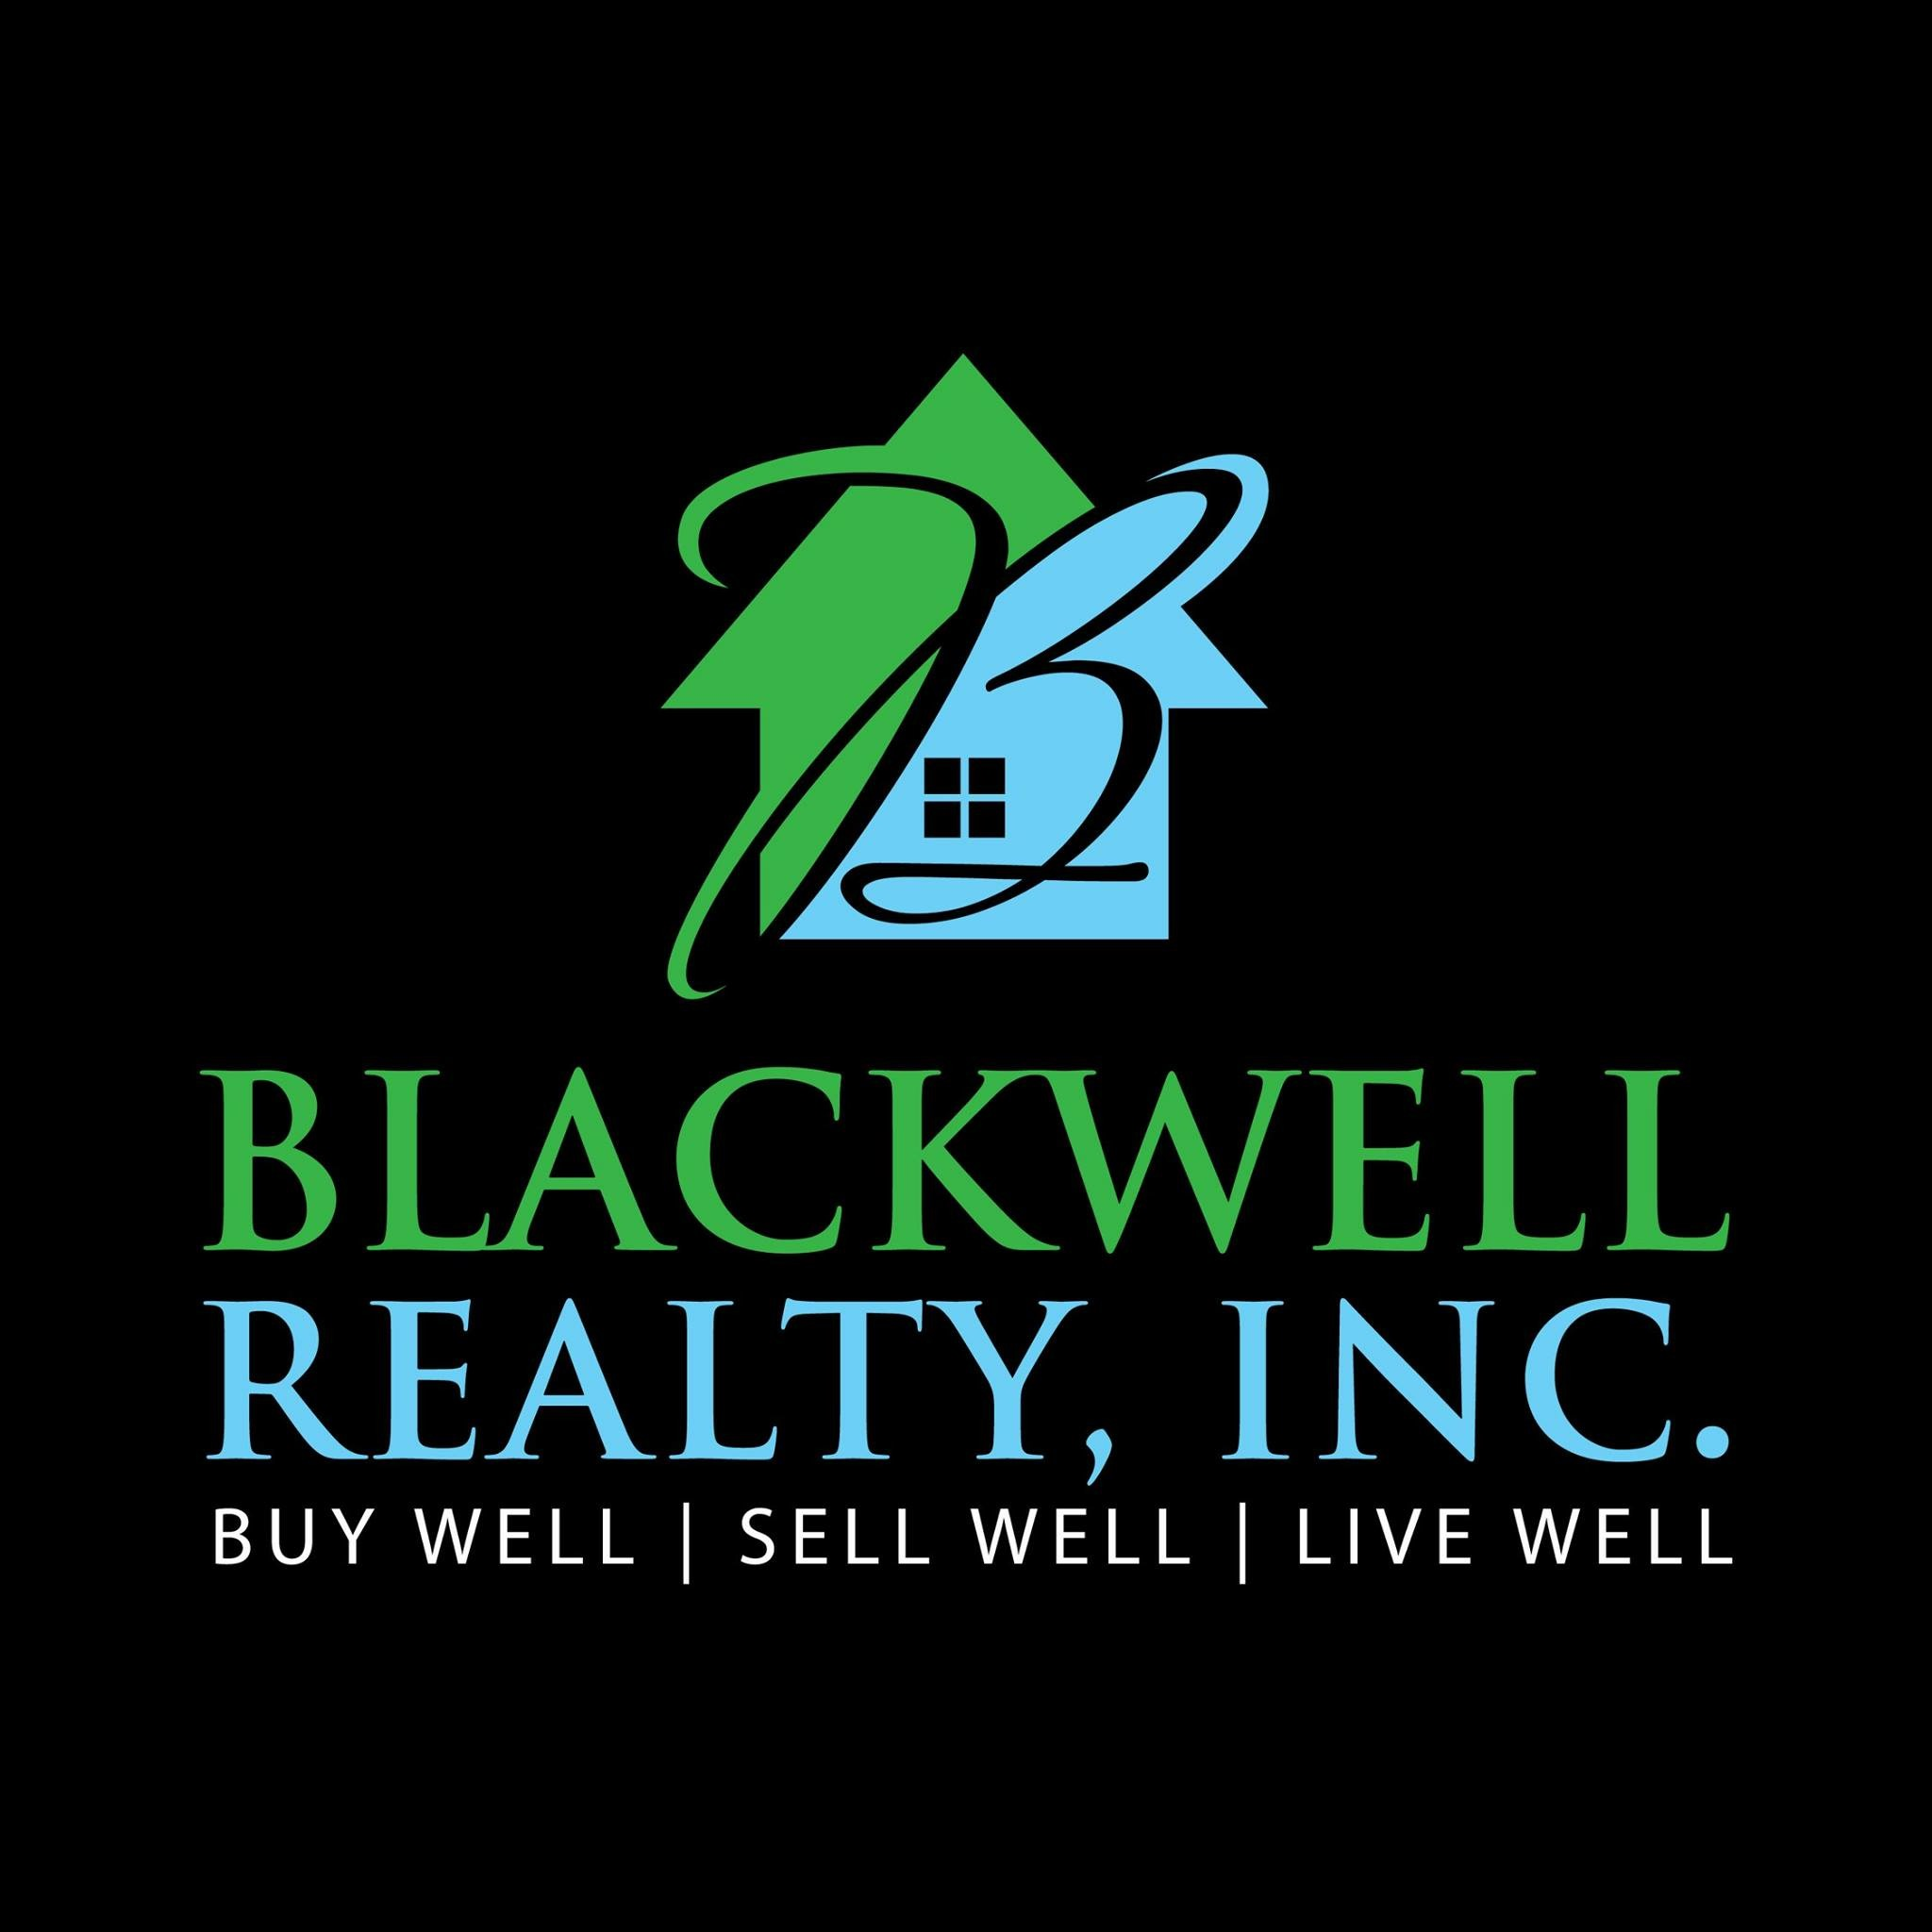 Blackwell Realty, Inc. Blackwell Realty, Inc.